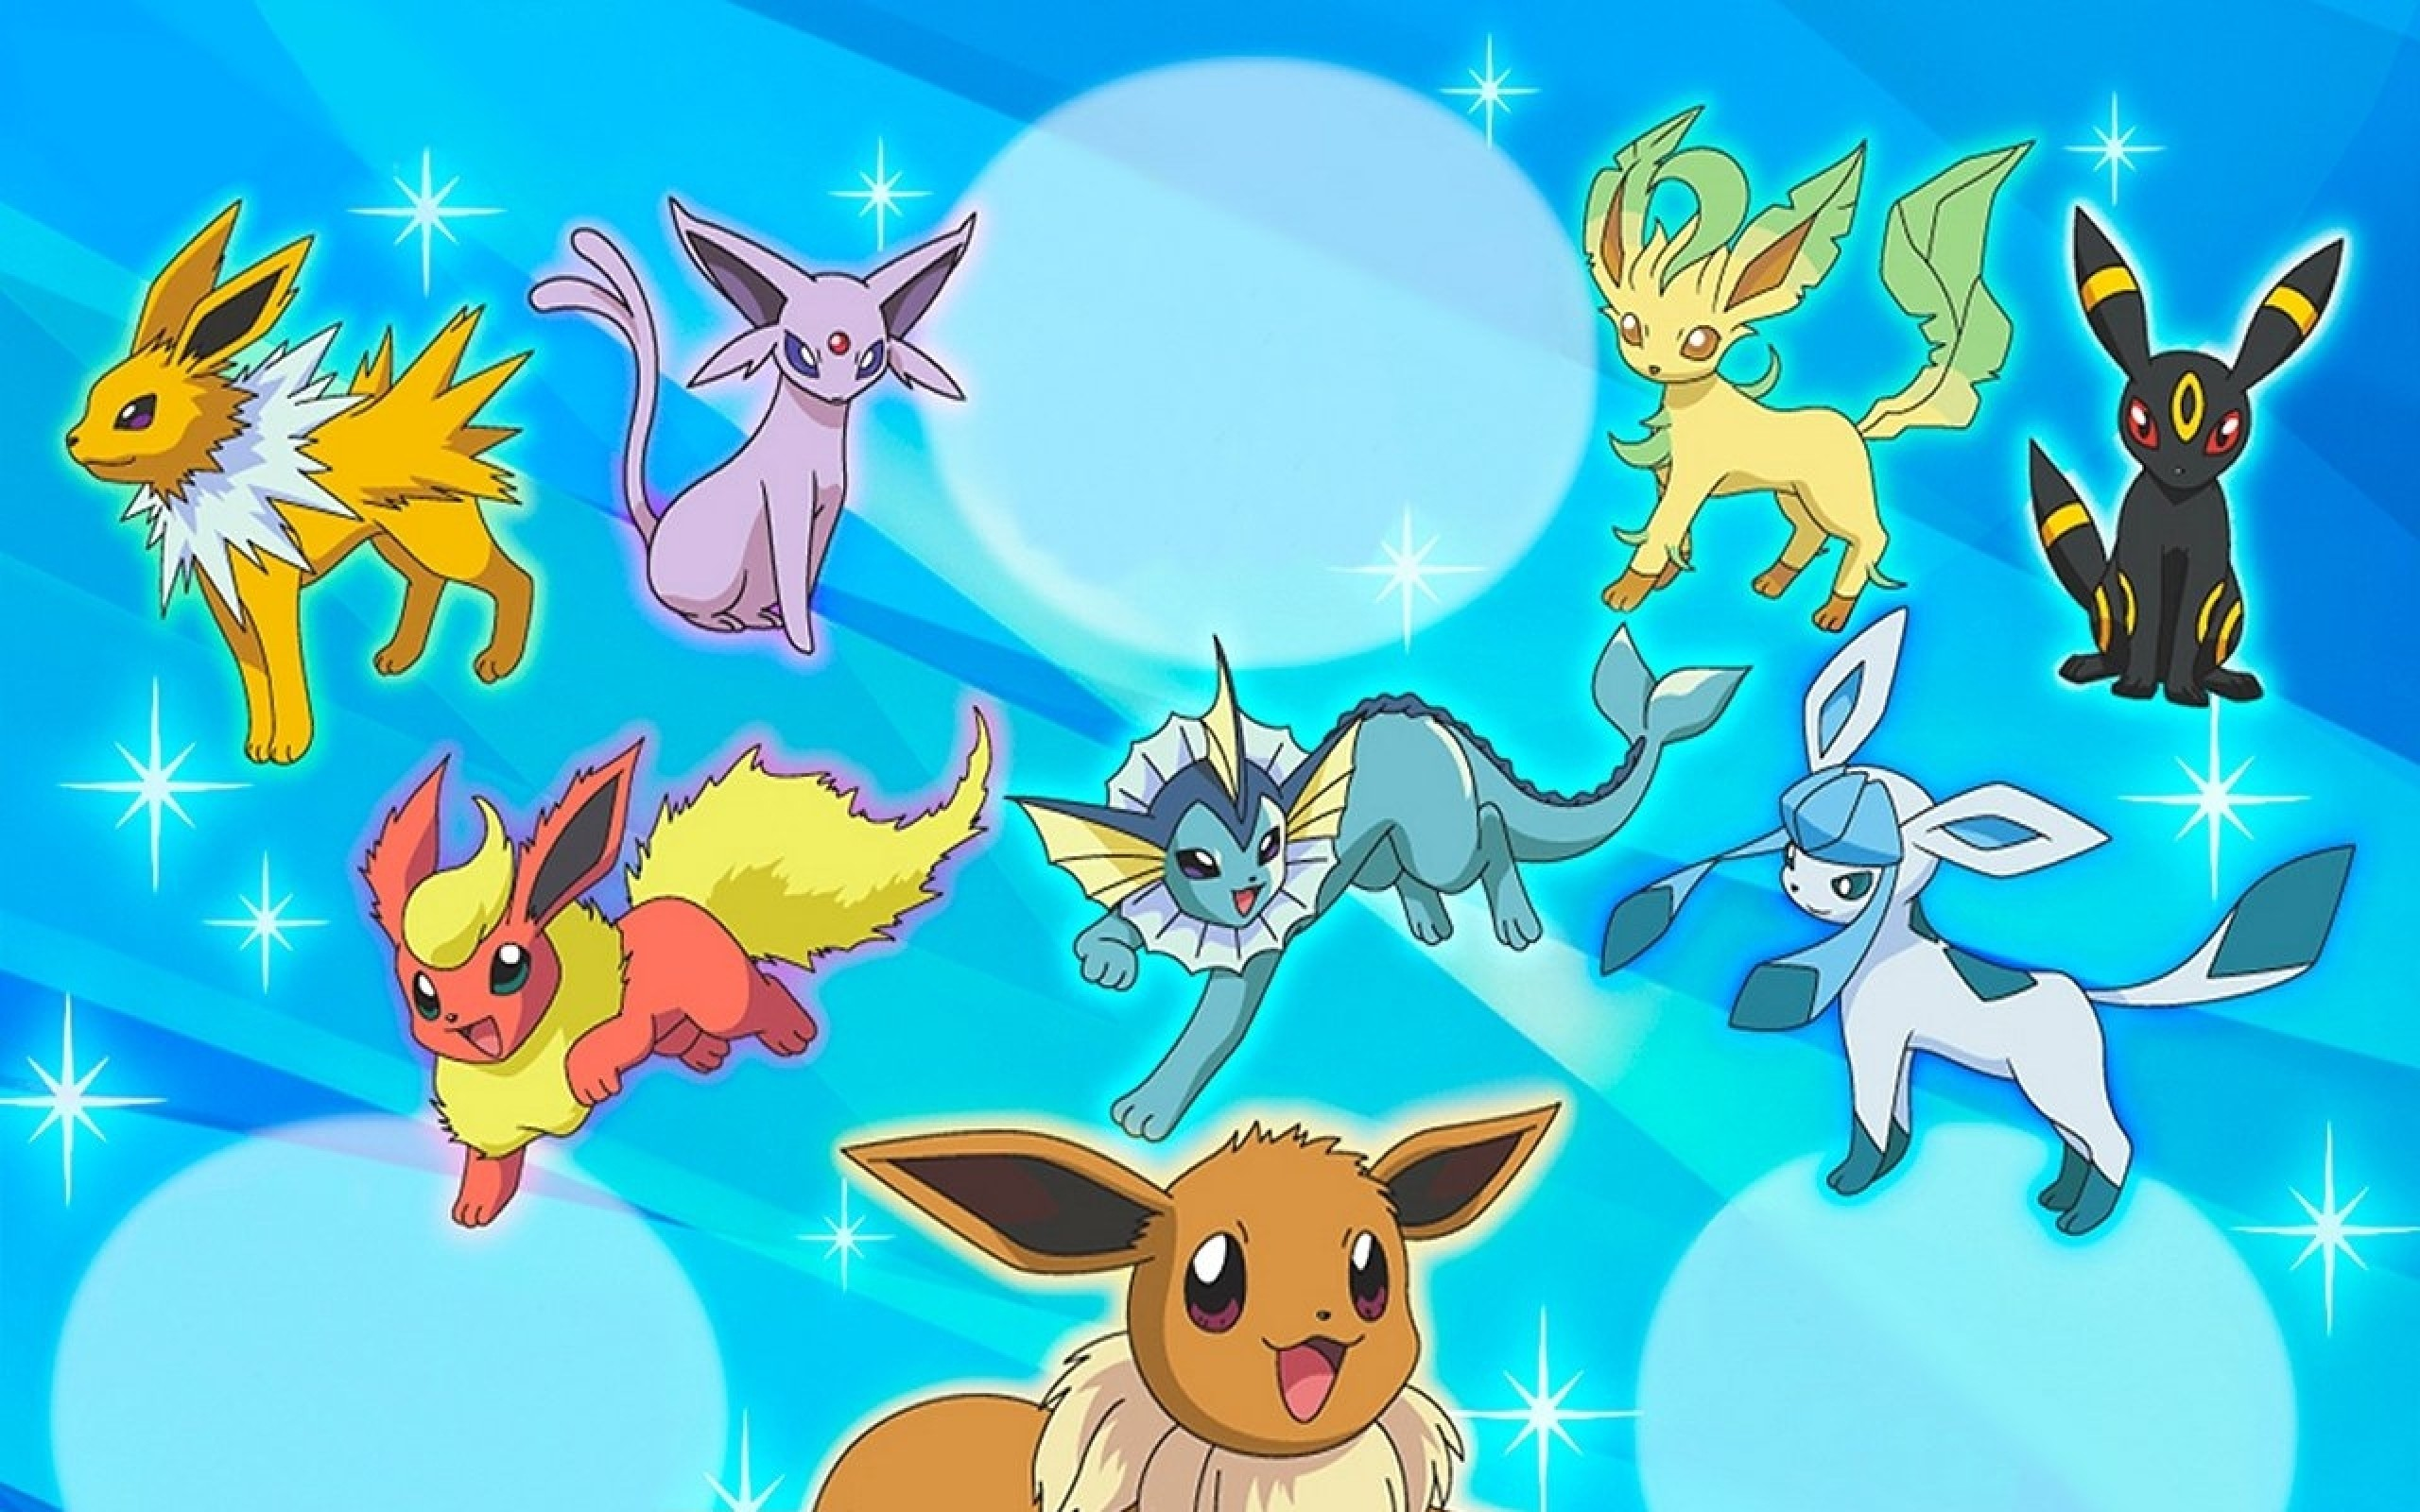 Eeveelutions Wallpaper HD 71 images